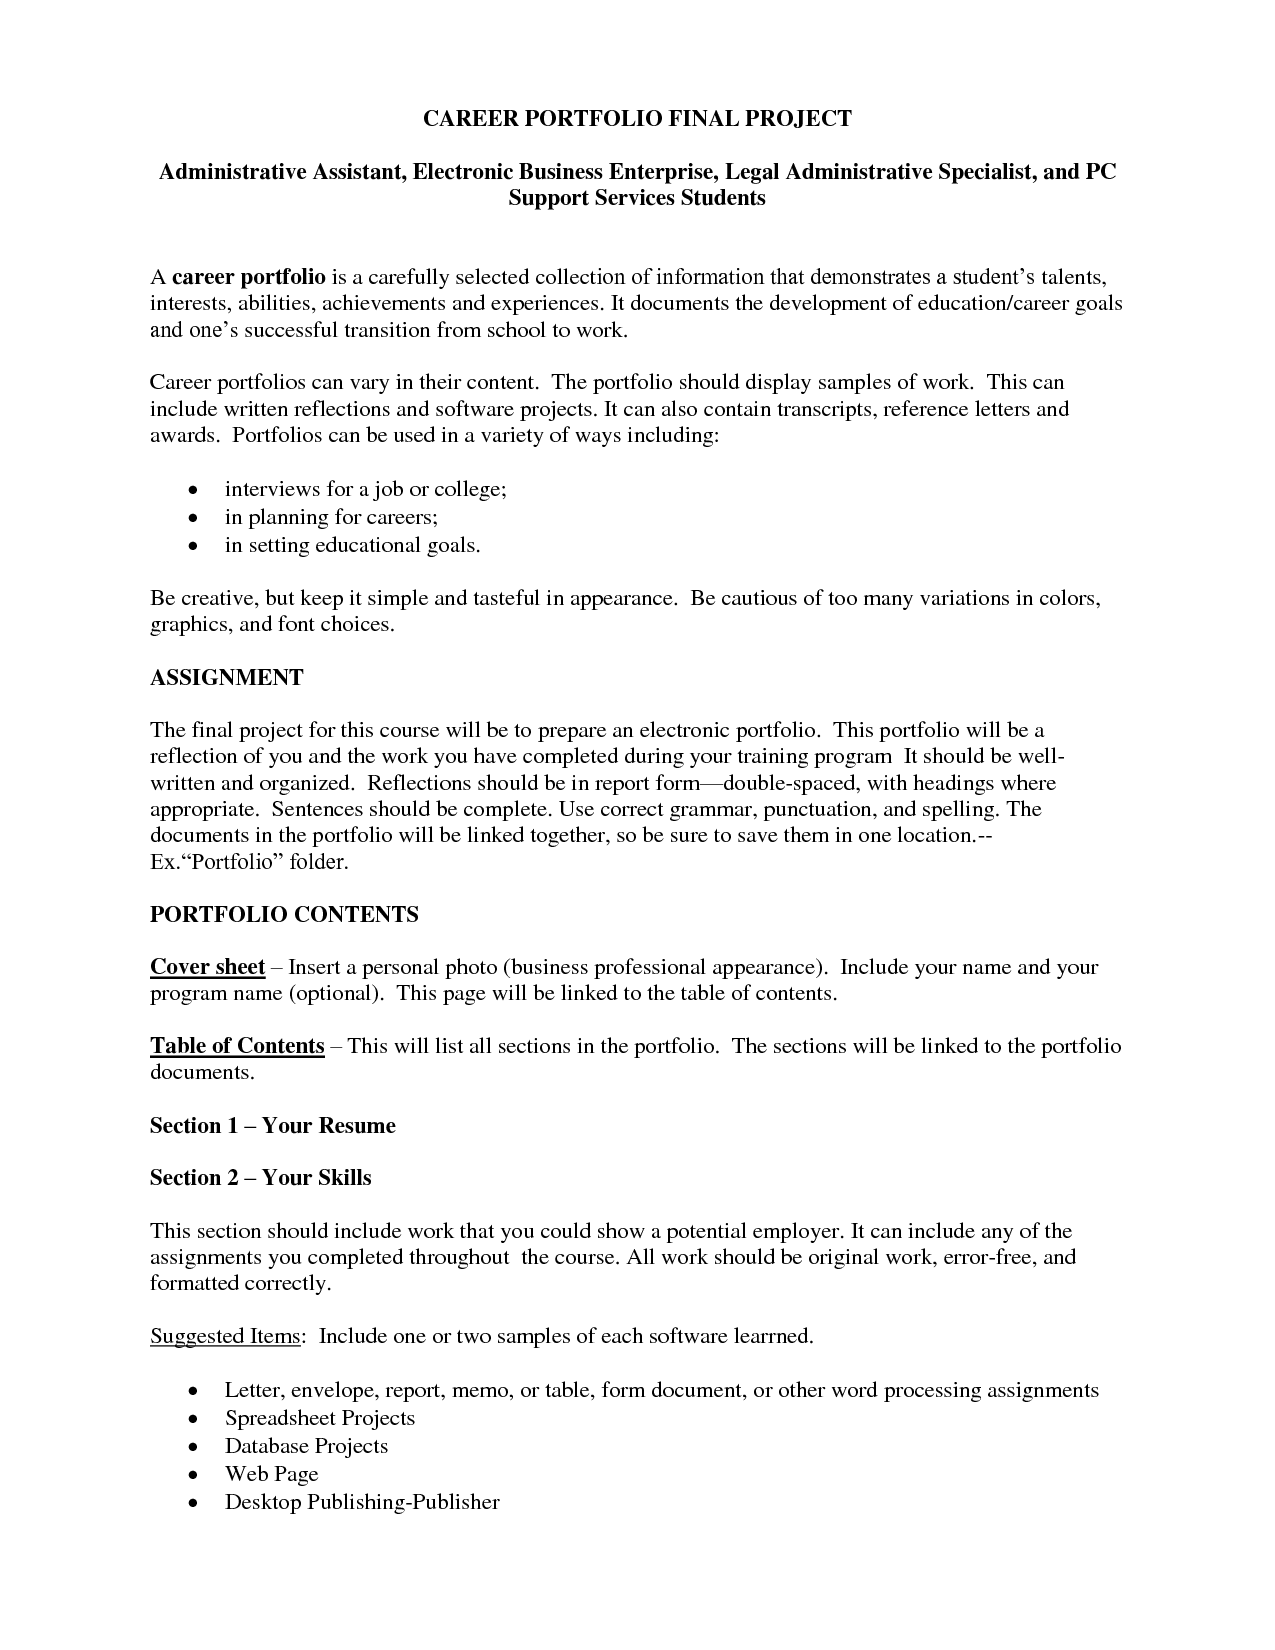 General Resume Template Legal Administrative Resume Samples  Httpersumelegal